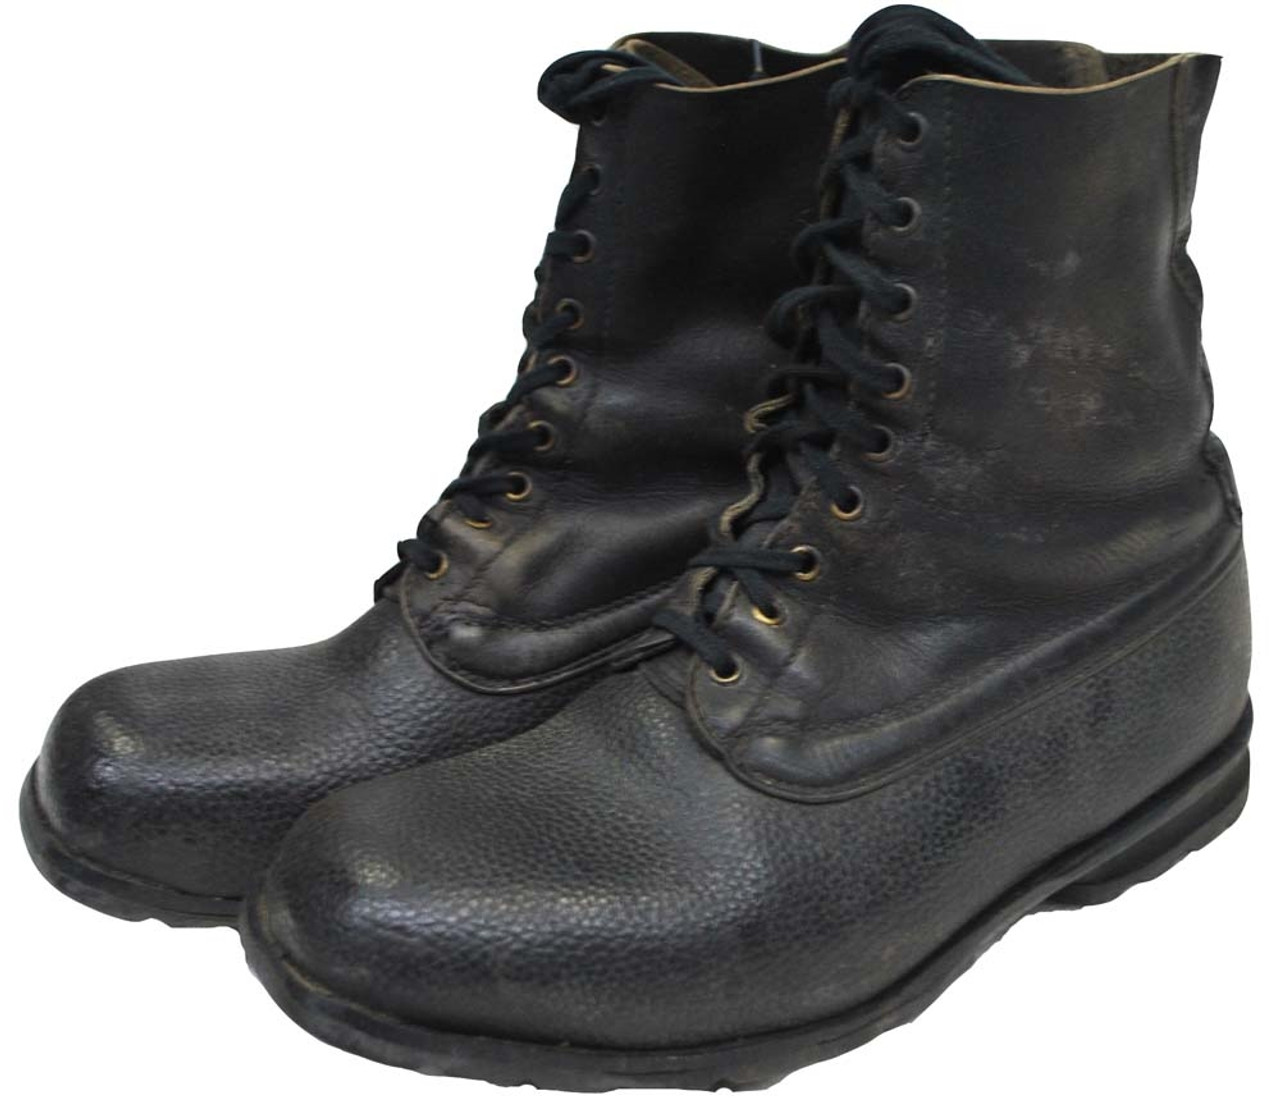 Swedish Army Black Low Boots With Rubber Soles from Hessen Antique